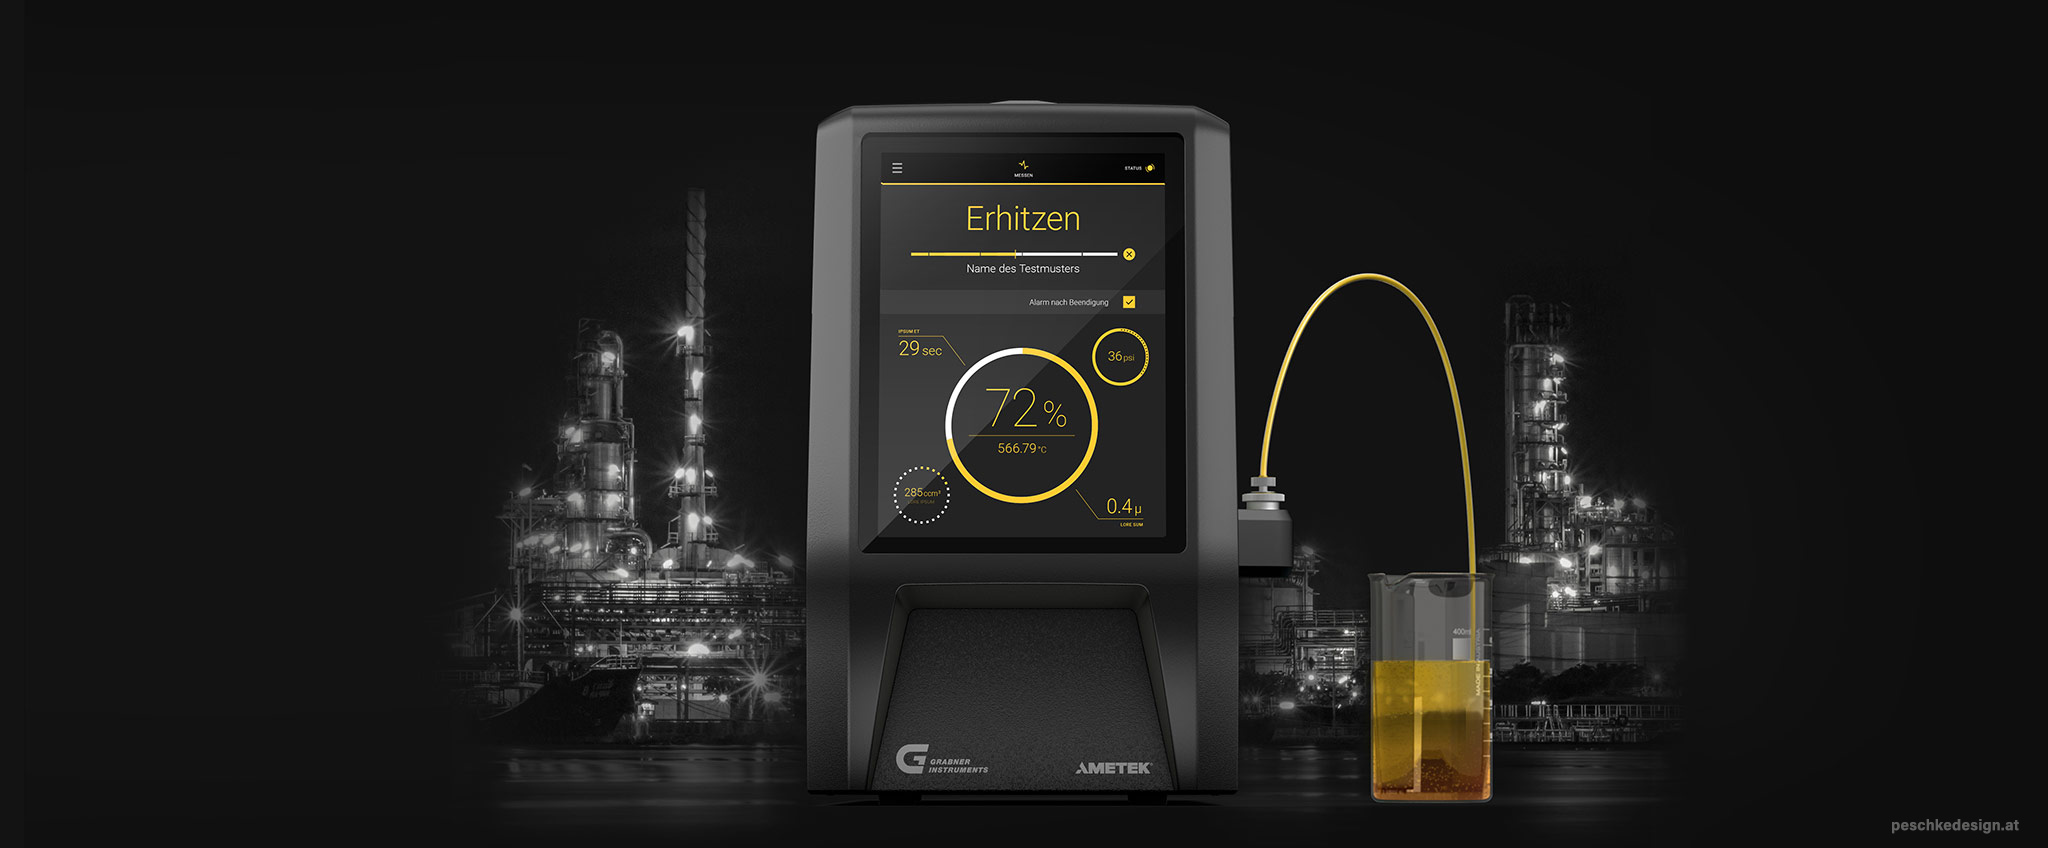 Showcasing the device design in front of an oil refinery at night.